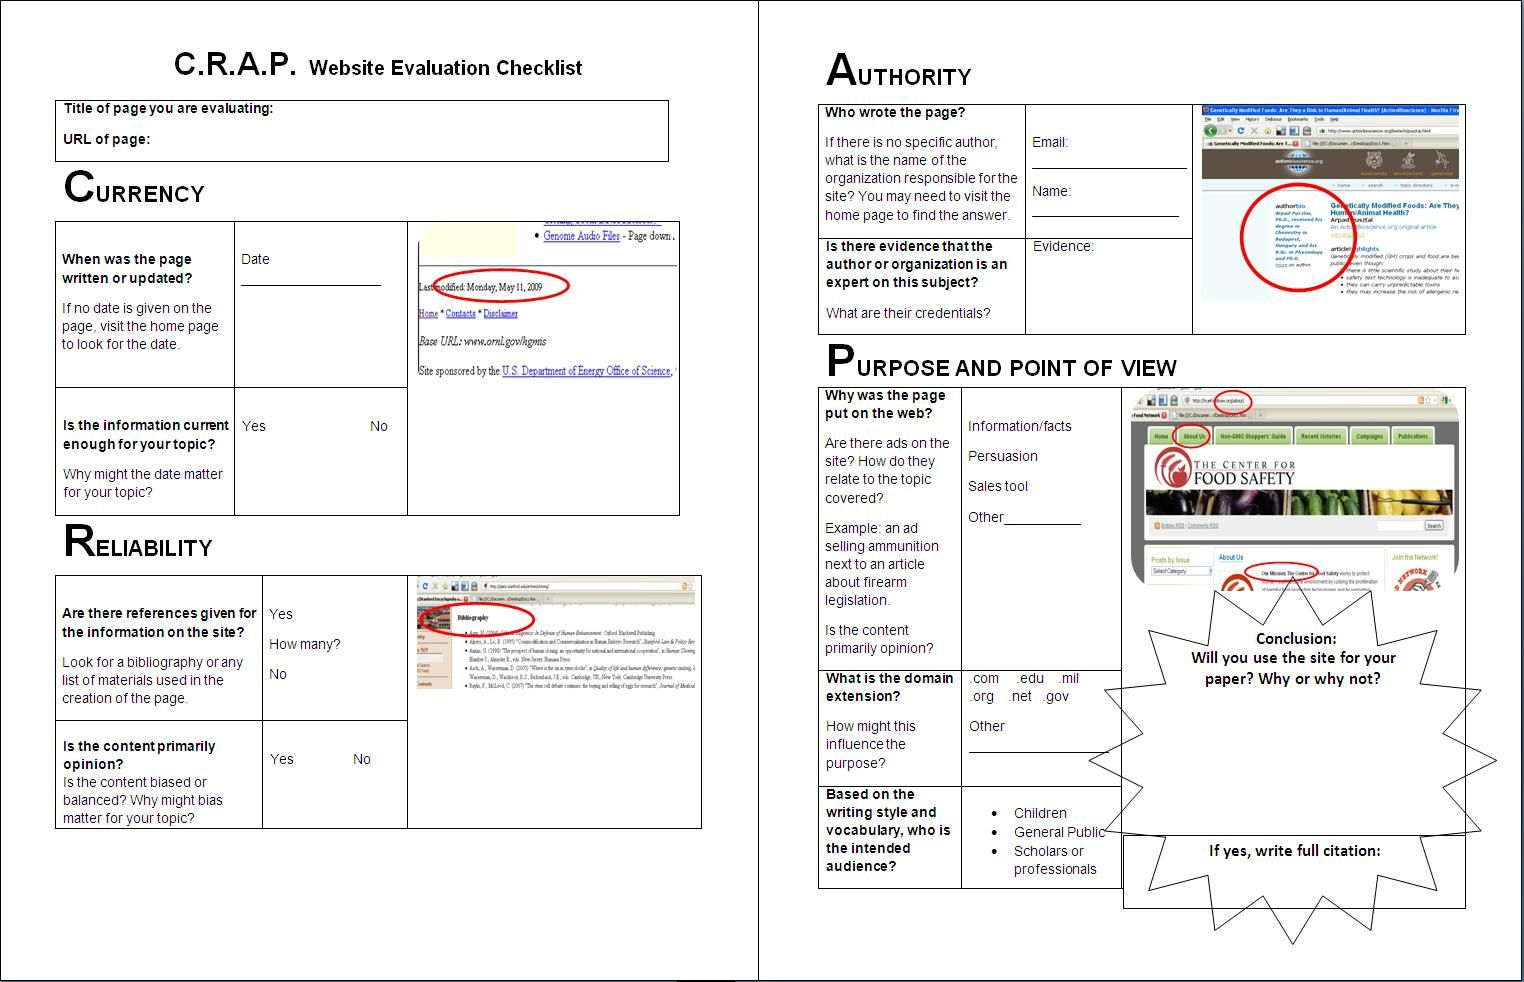 C.R.A.P website evaluation checklist often used in ITW ...